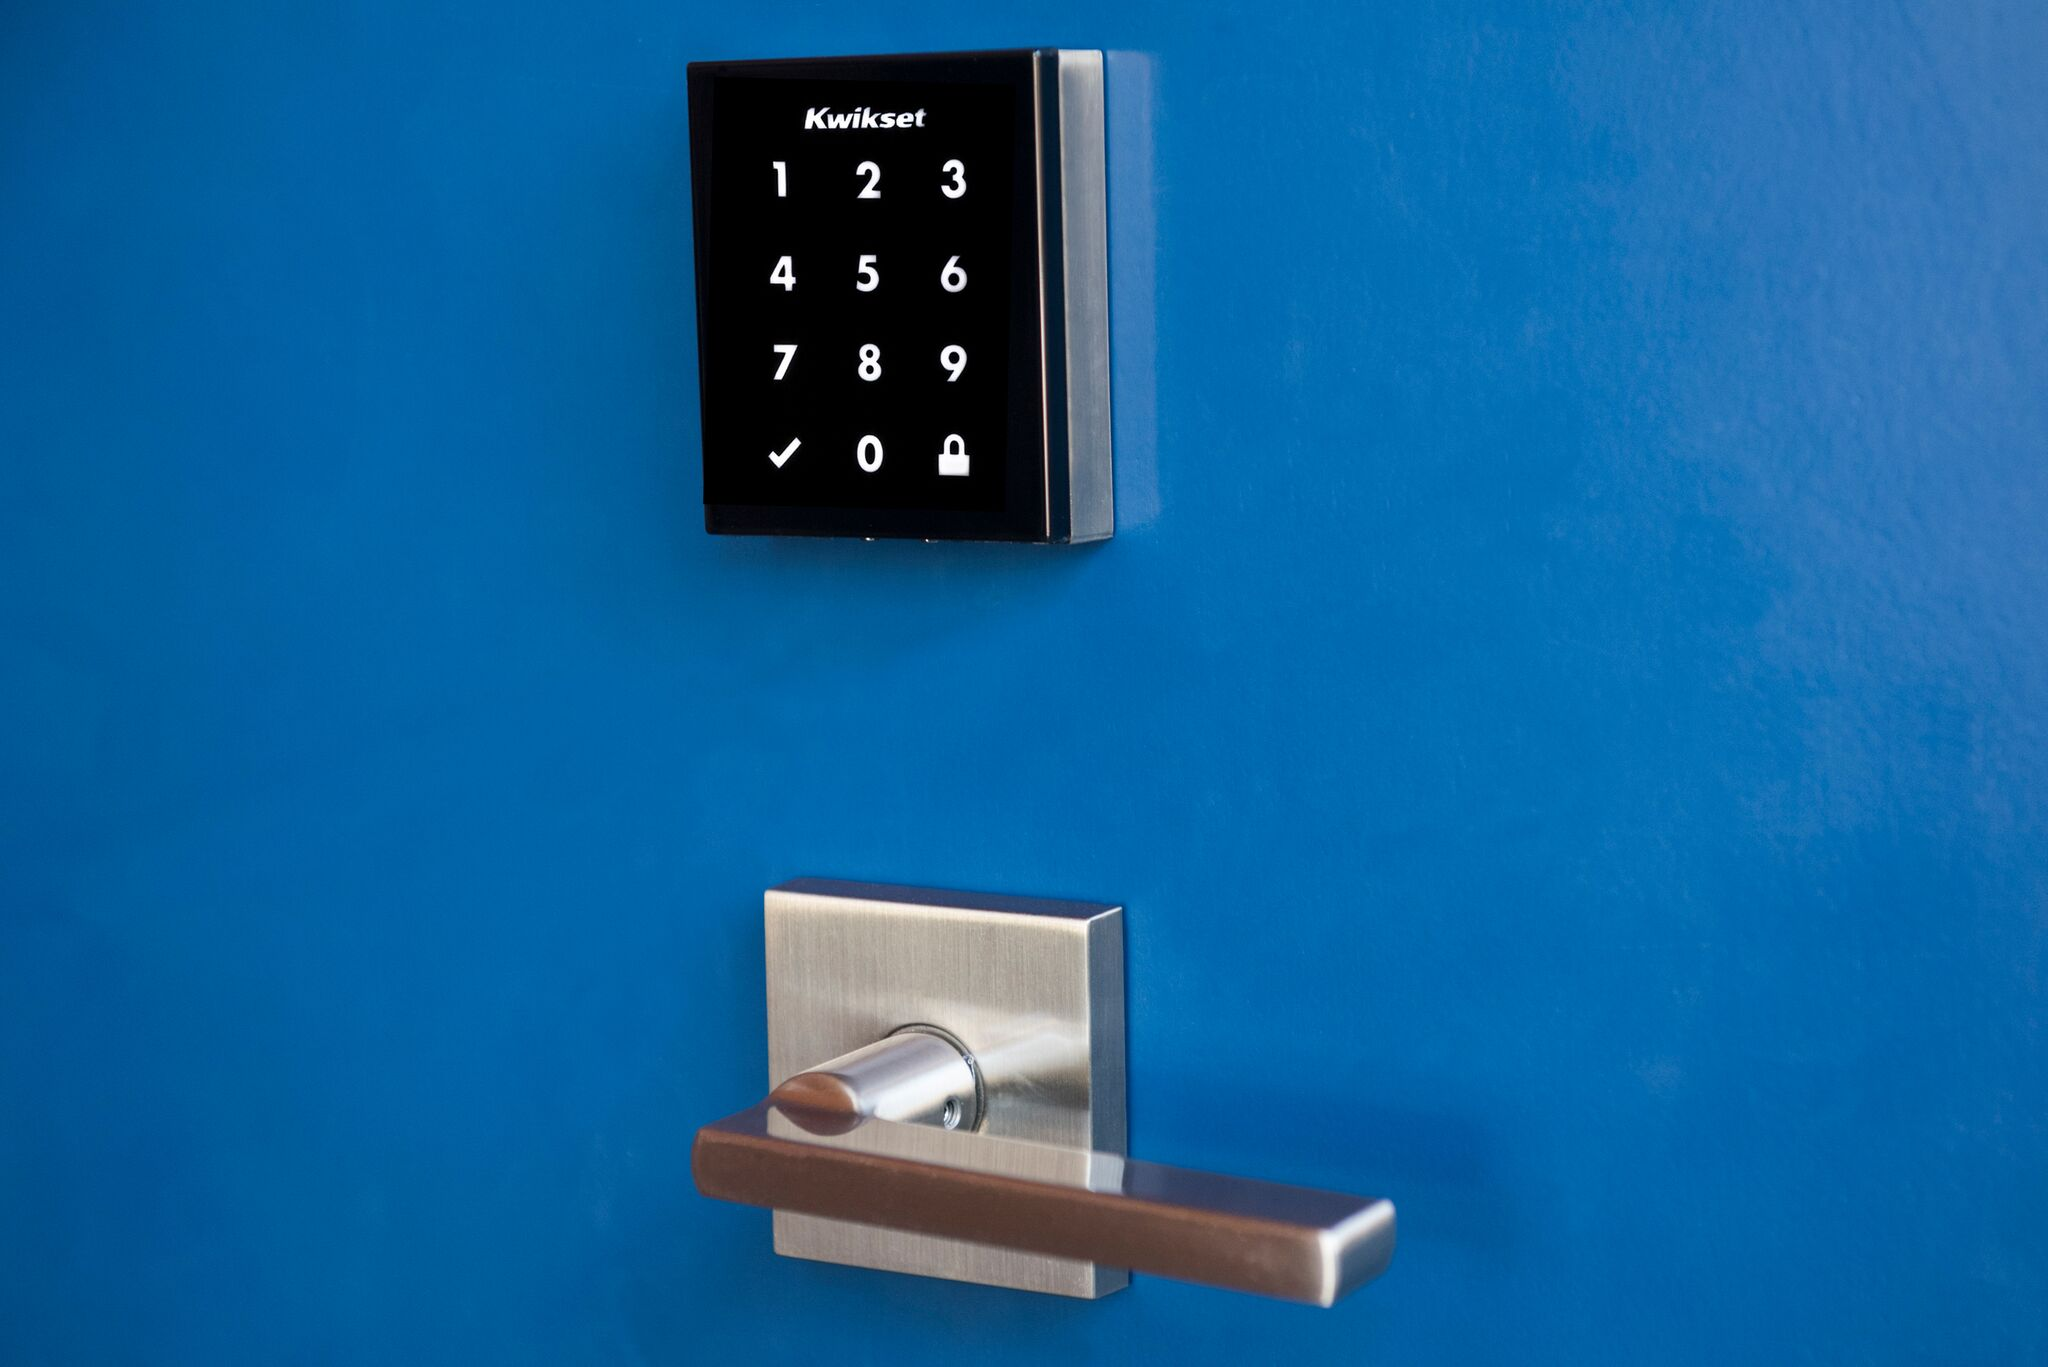 Named After The Gly Volcanic Rock Obsidian Touchscreen Deadbolt Has A Breakthrough Design Made For Modern Homeowners Looking Keyless Entry That